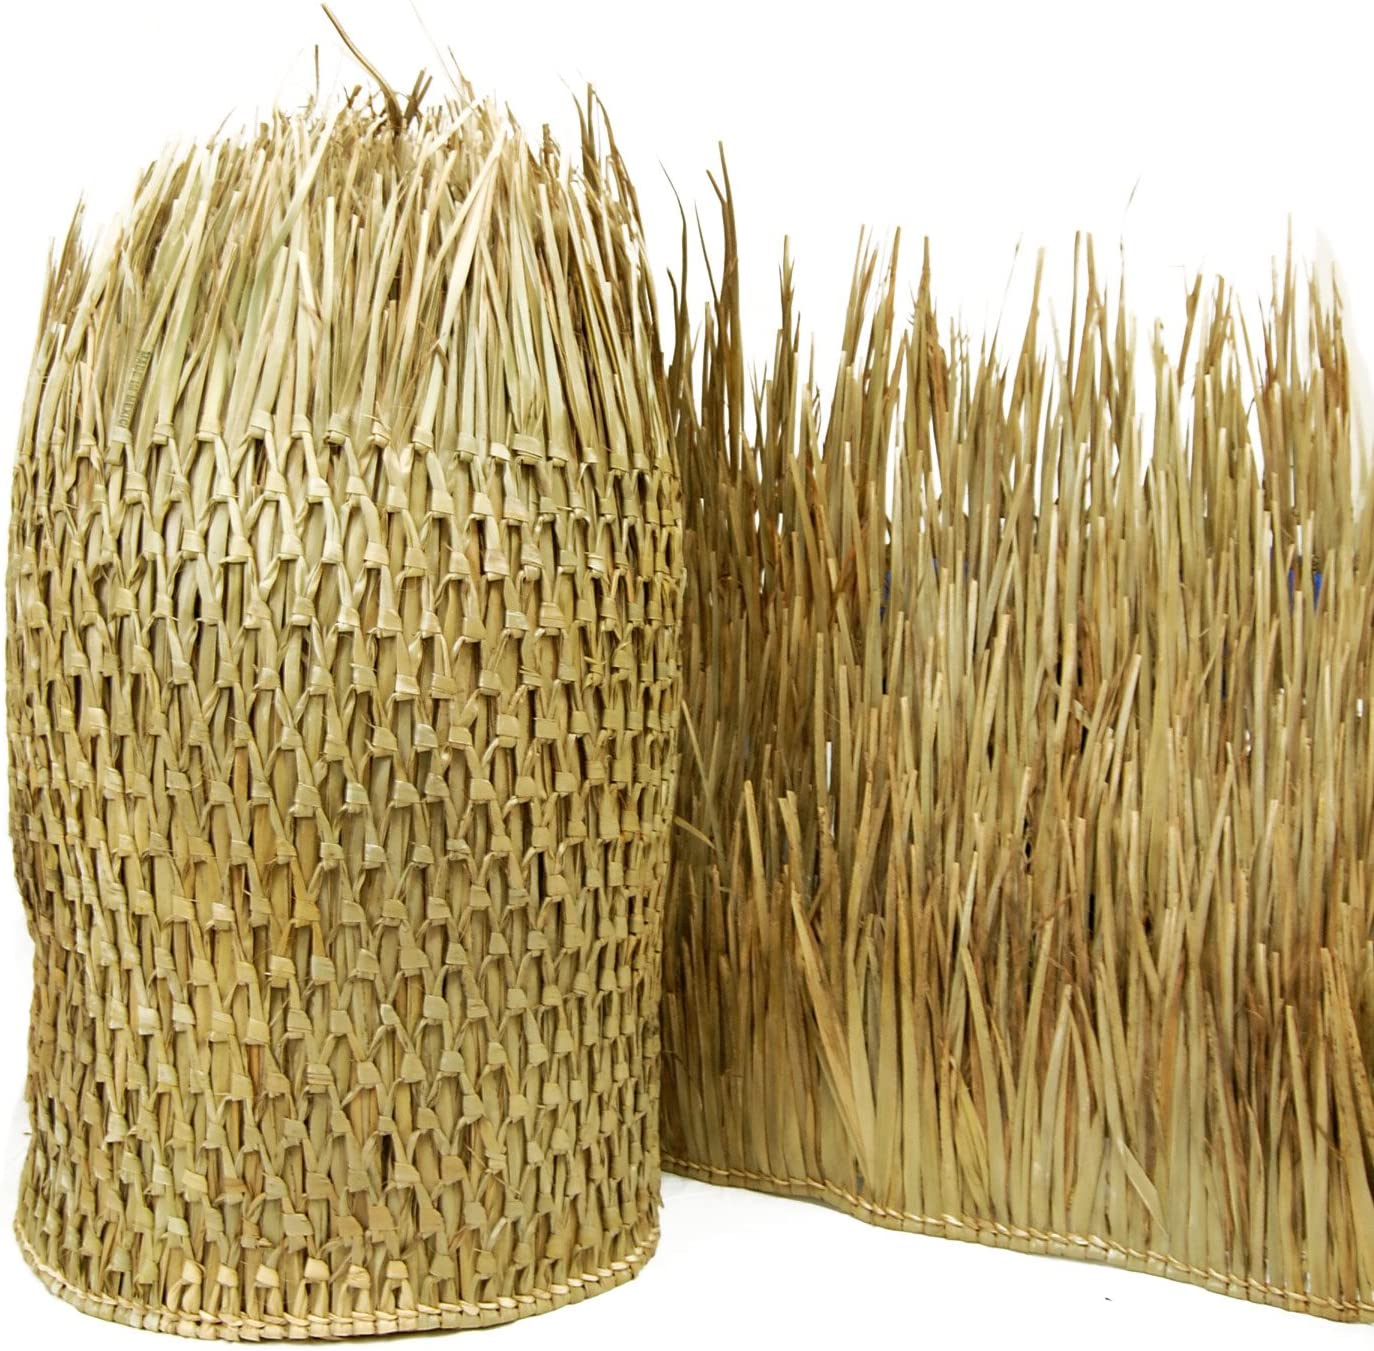 """FOREVER BAMBOO 511-60FB Mexican Palm Thatch Runner, 35"""" x 60'"""